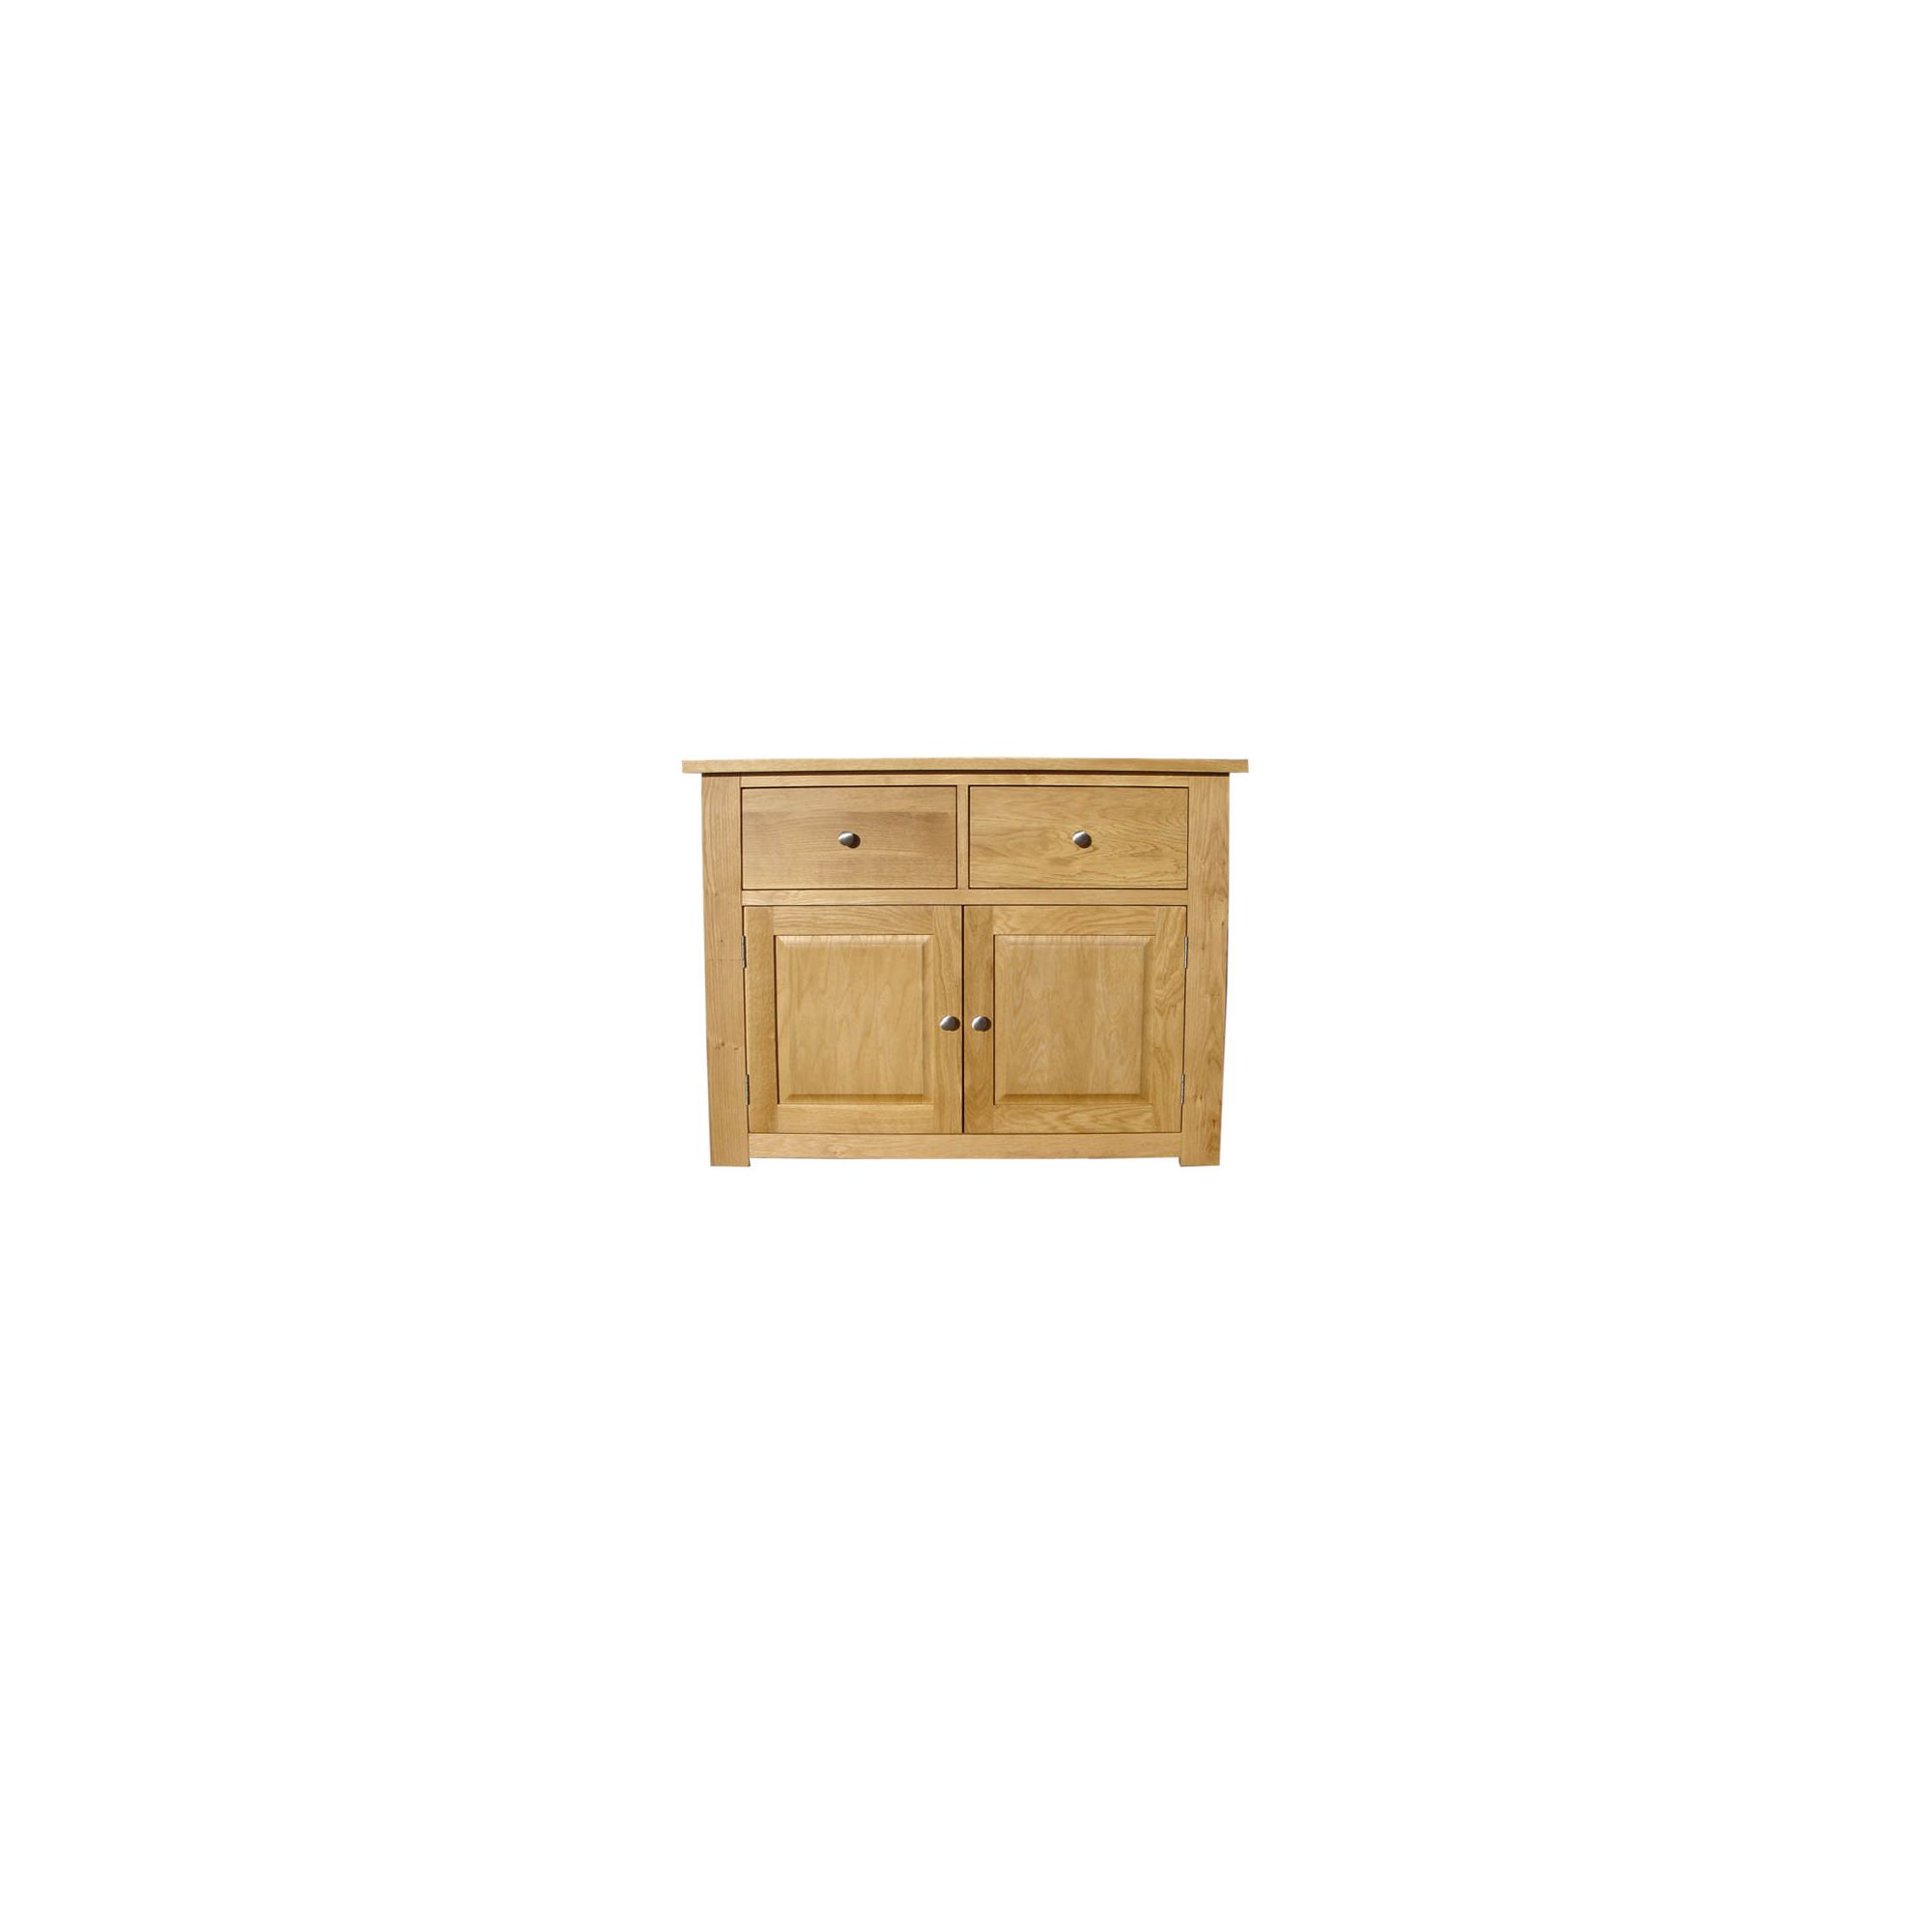 Home Zone Furniture Lincoln Oak 2009 Two Drawer Sideboard at Tesco Direct